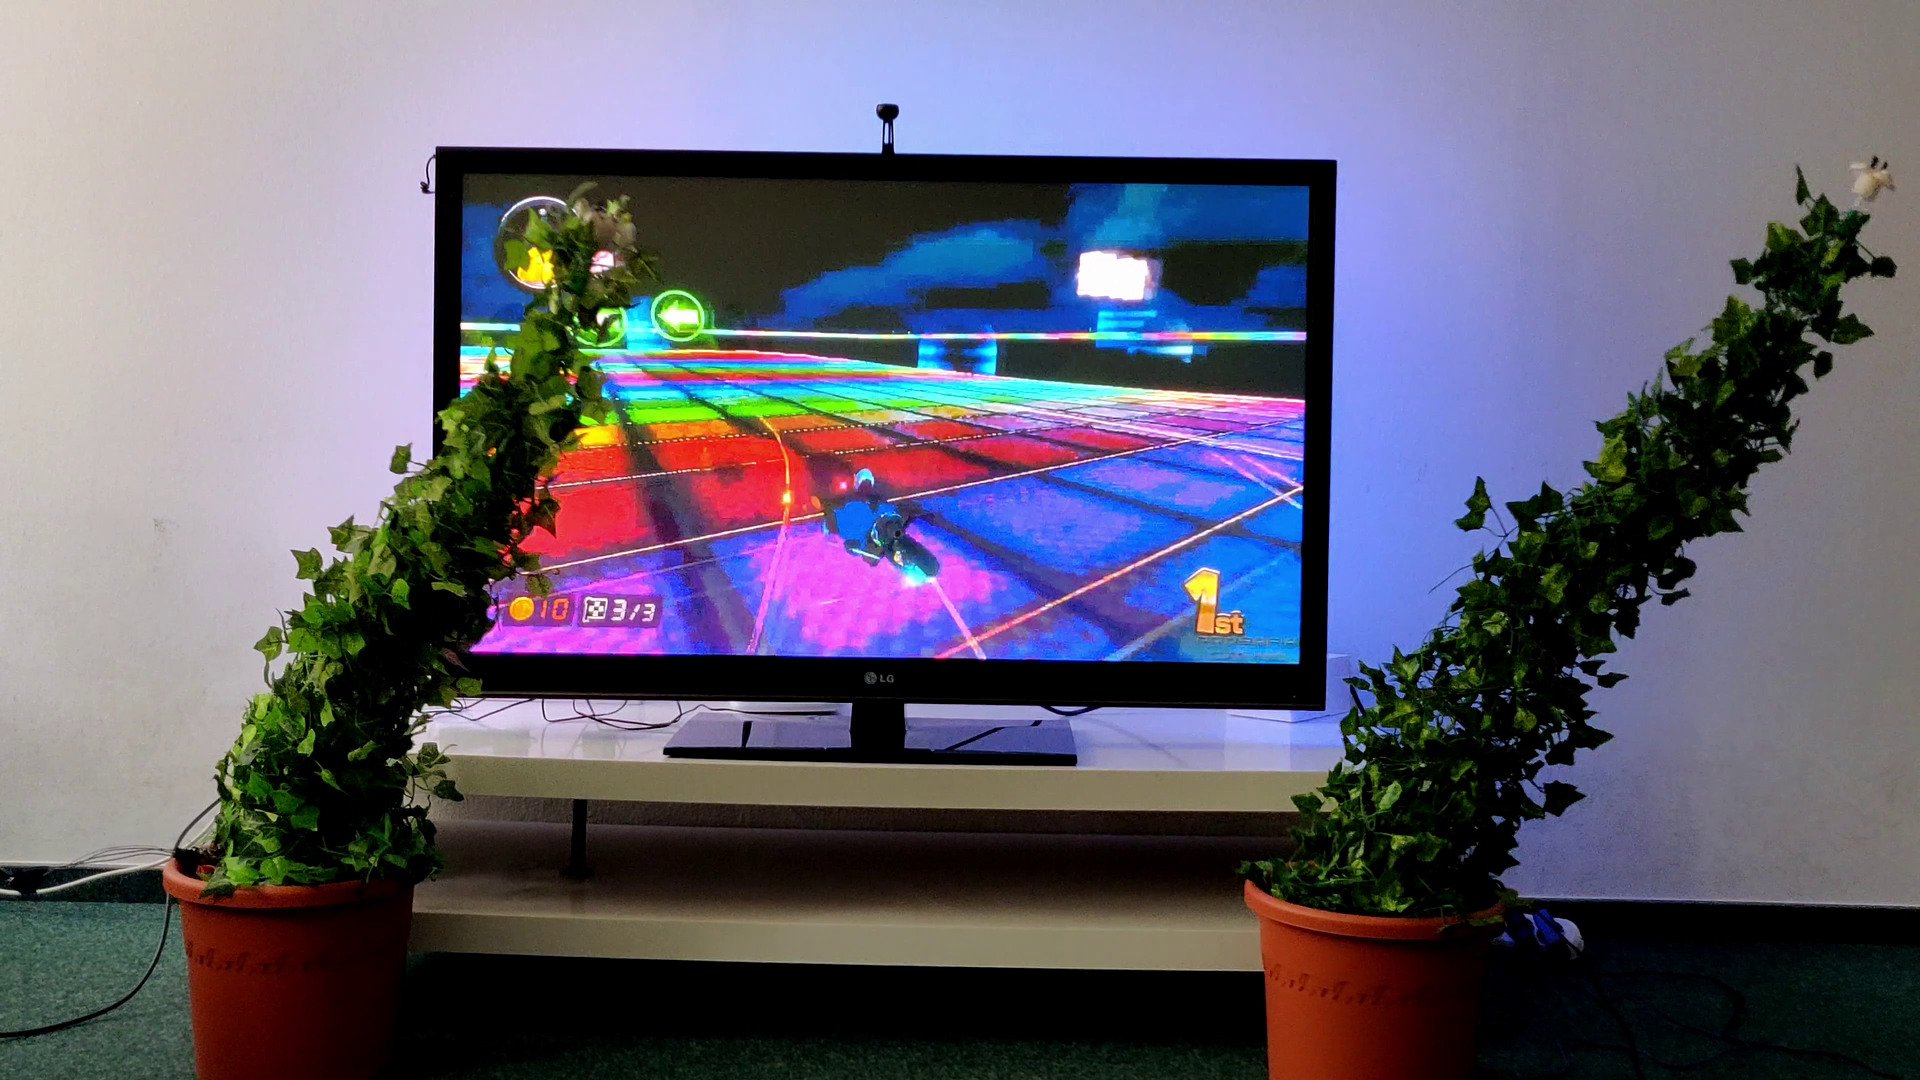 AmbiPlant - Ambient Feedback for Digital Media through Actuated Plants